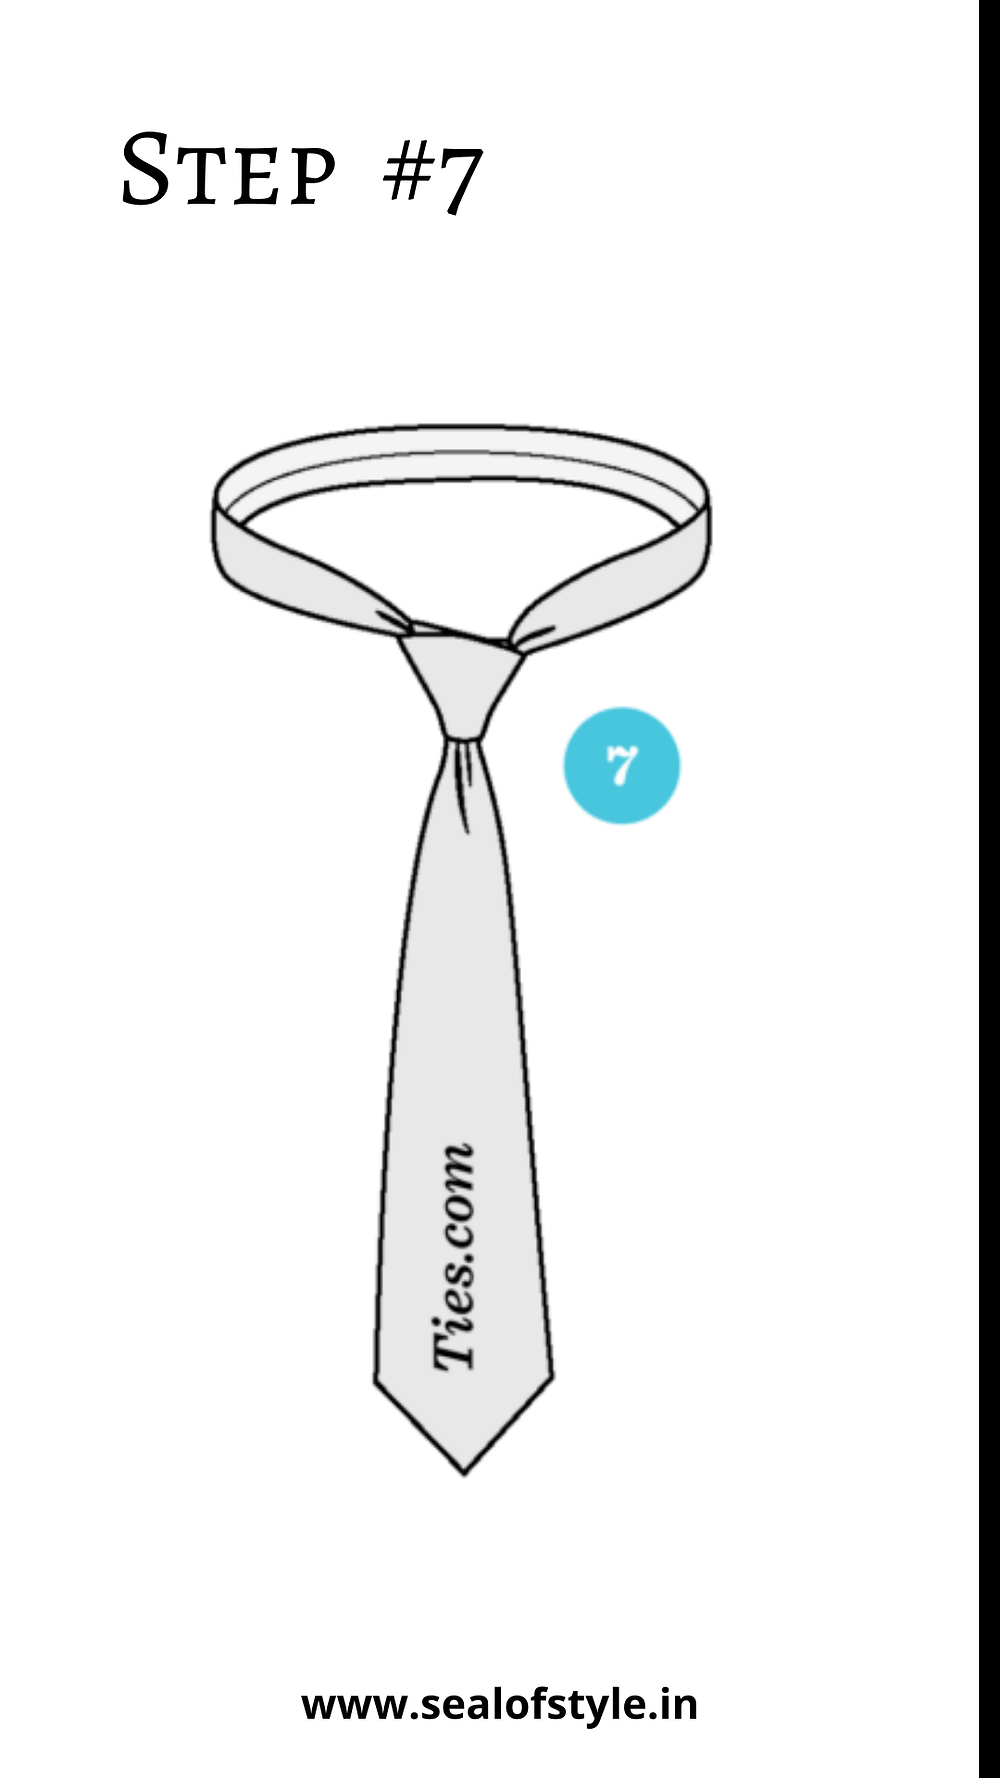 Steps to tie knot